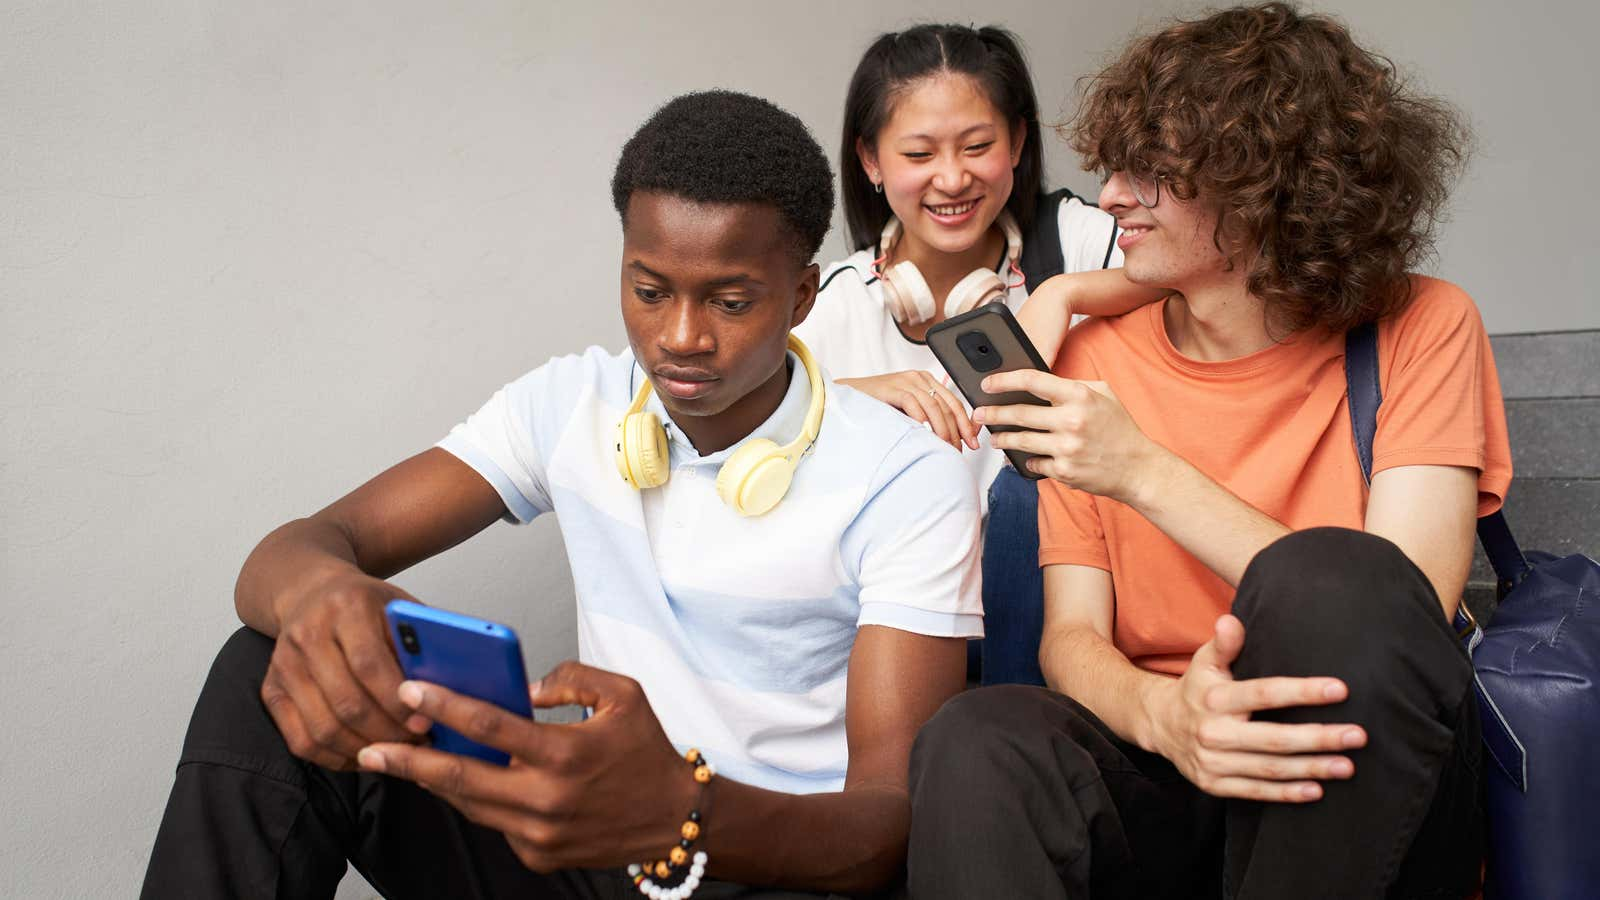 What We Actually Know About How Social Media Affects Teens' Mental Health